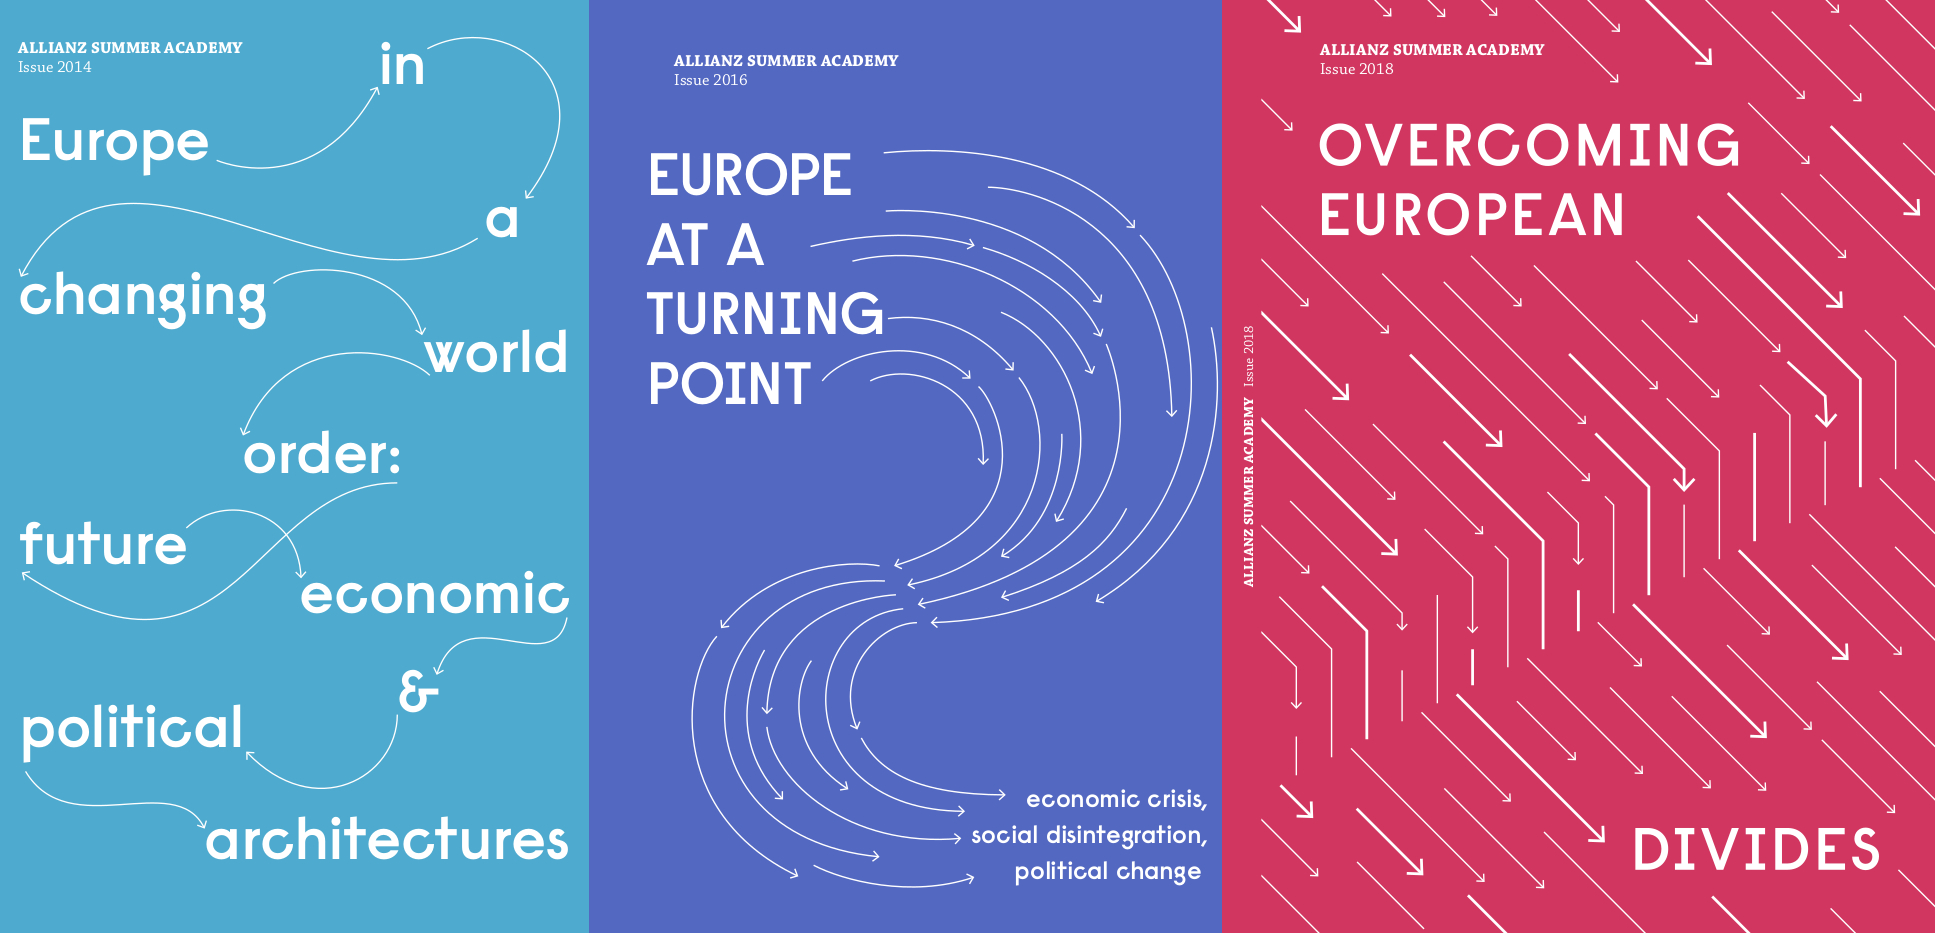 Allianz Summer Academy Publications